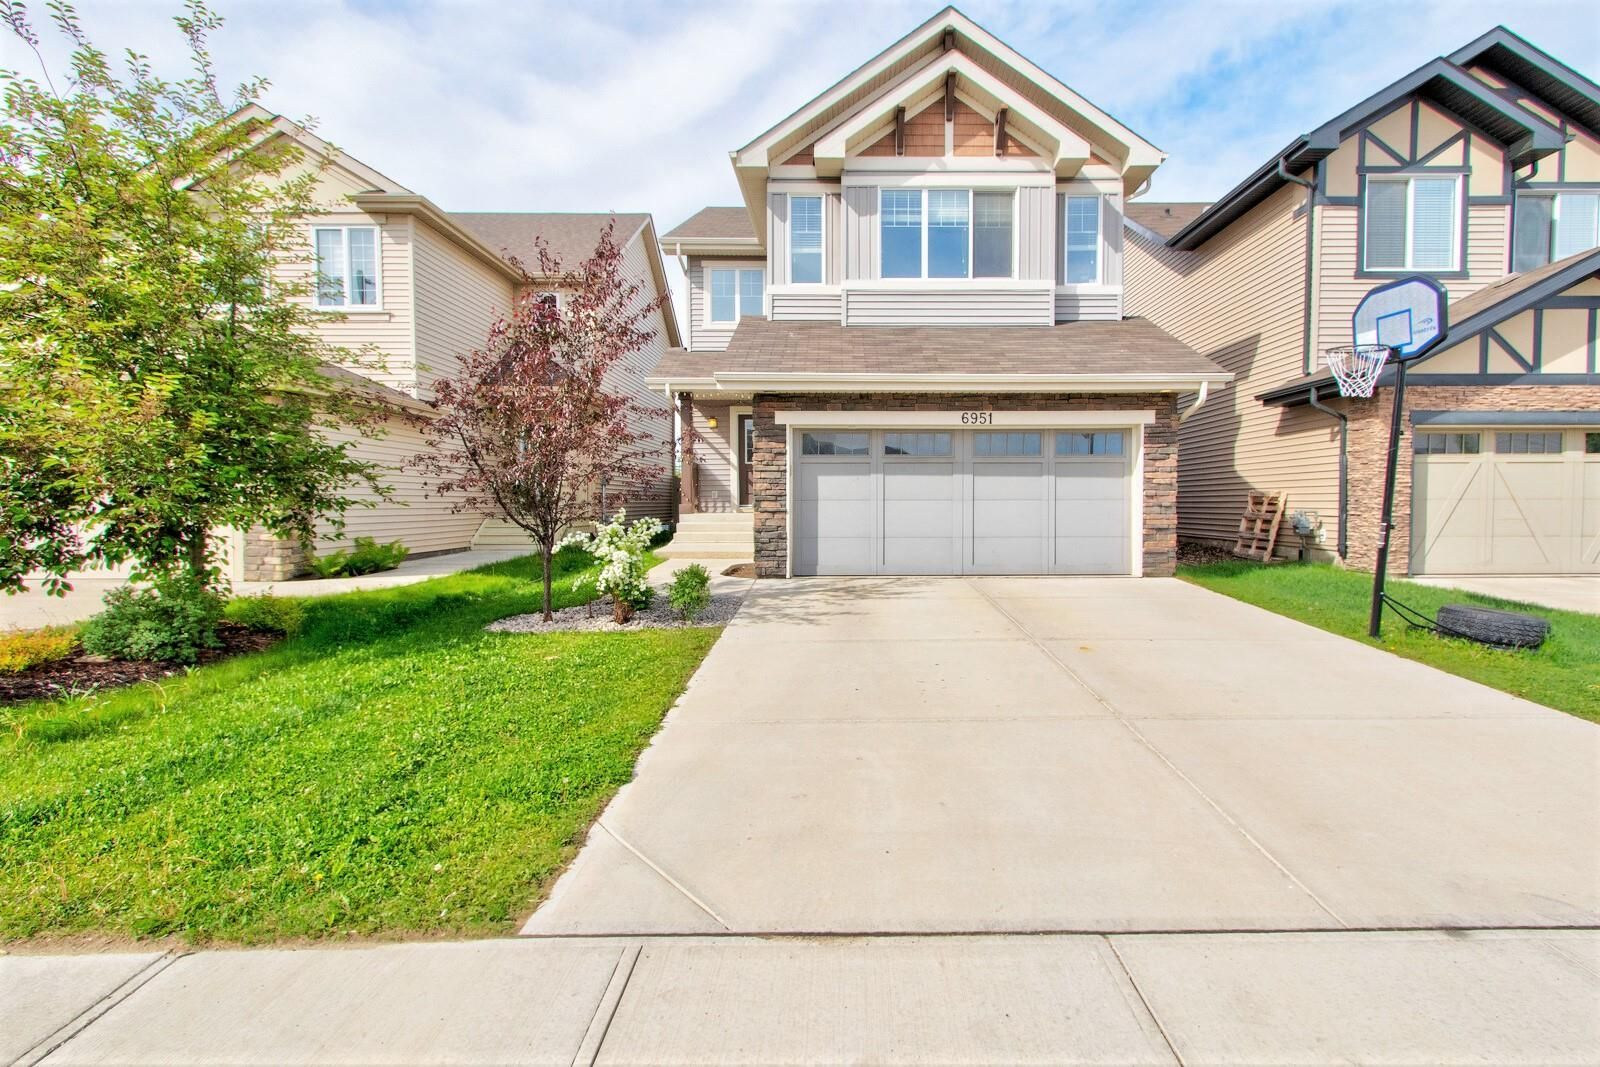 Main Photo: 6951 EVANS Wynd in Edmonton: Zone 57 House for sale : MLS®# E4249629